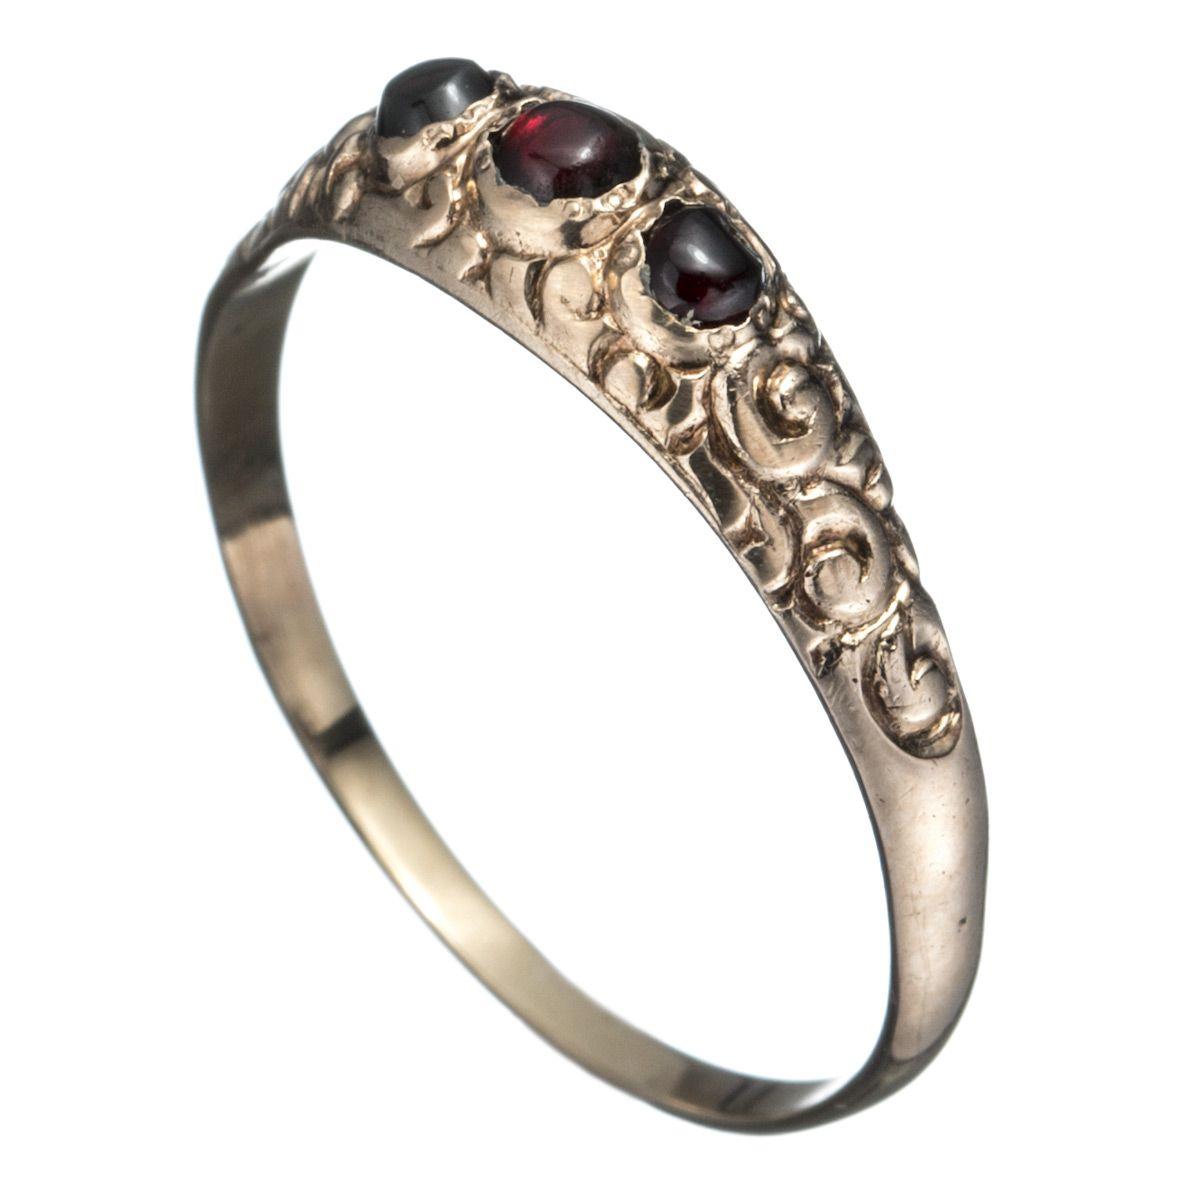 1800s Victorian 10K Gold with Garnet Ring :: Antique Jewelry :: Featured :: Alexis Bittar